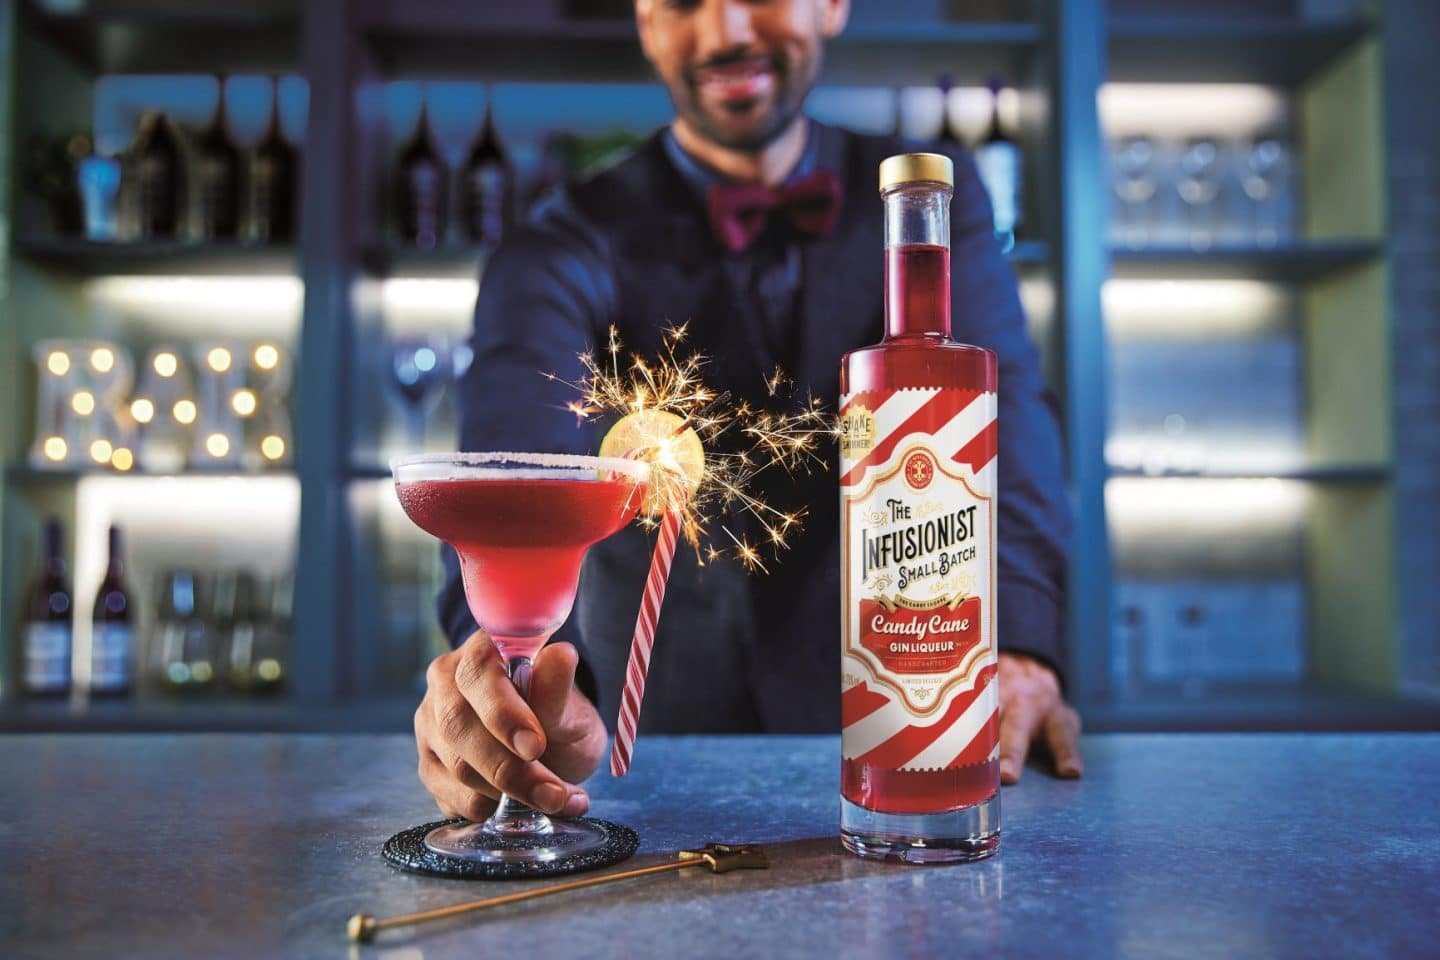 Aldi Is Releasing A Glittery Candy Cane Gin Liqueur For Christmas